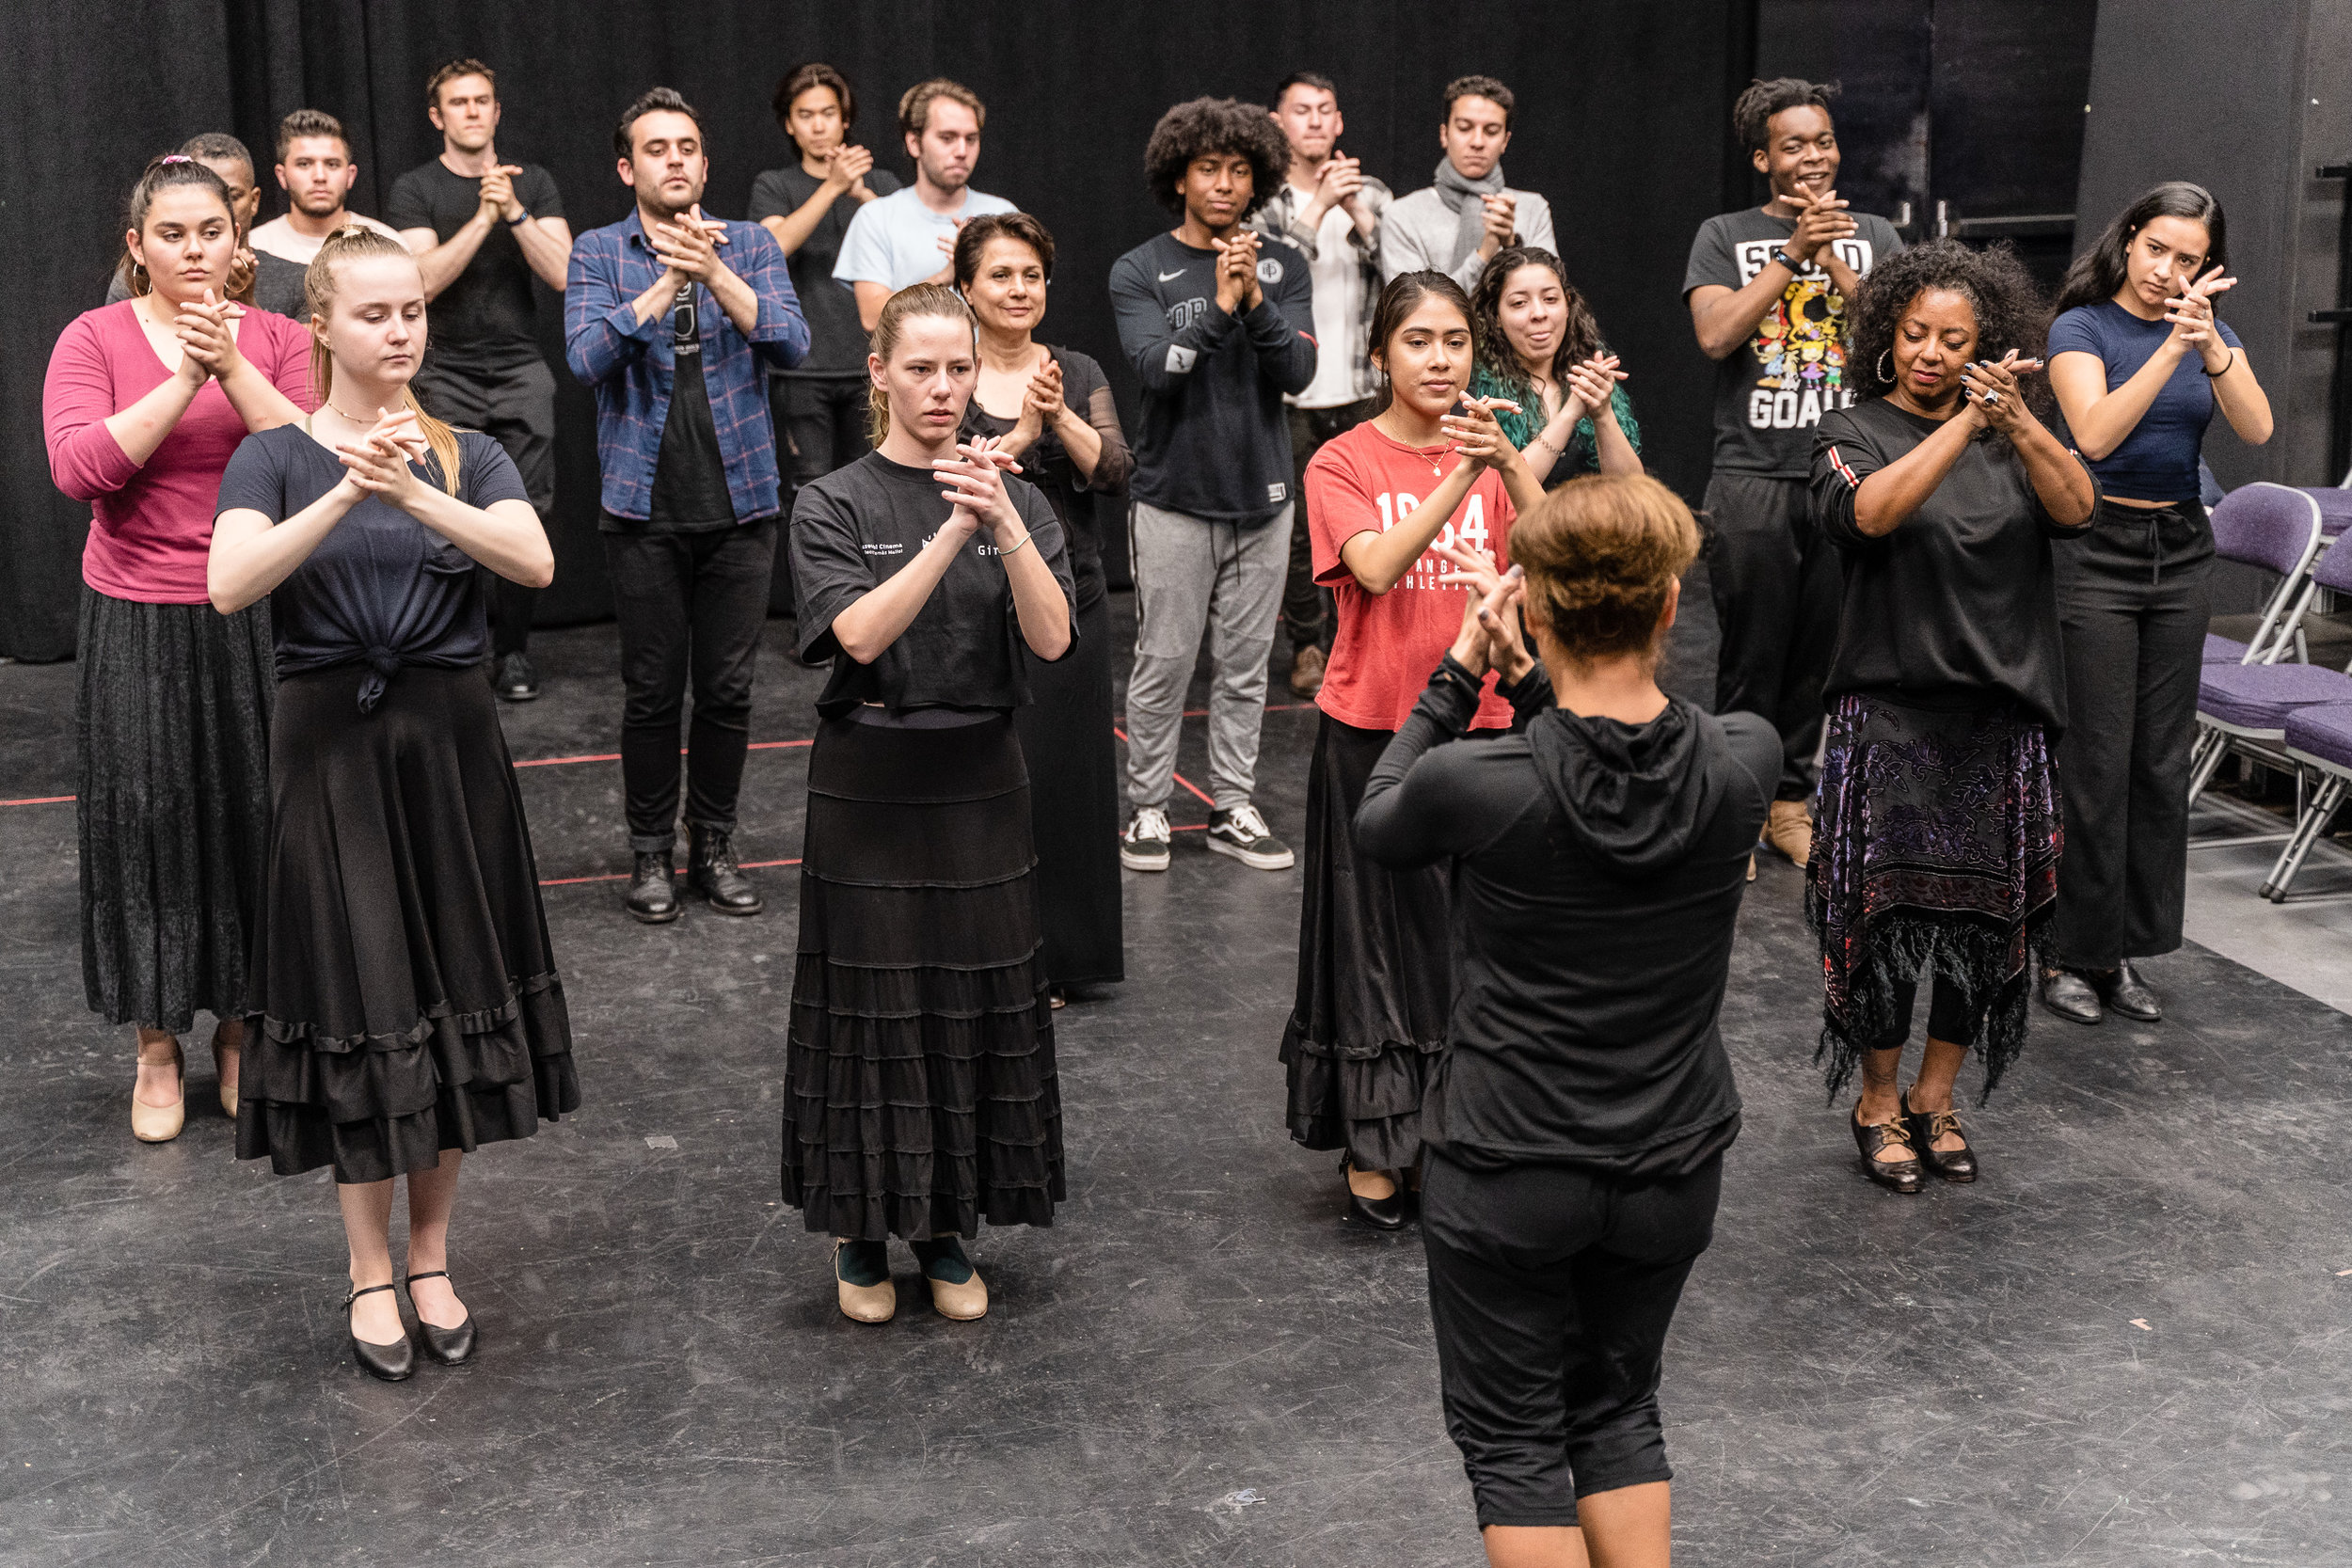 Flamenco Macbeth co-choreographer and SMC Theatre & Dance faculty member Cihtli Ocampo (bottom-center, in all black and facing away) teaches flamenco choreography to the cast of SMC's upcoming production of Flamenco Macbeth at the SMC Studio Stage, the space where Flamenco Macbeth will premiere in a month, on Thursday, March 21, 2019. Flamenco Macbeth is an adaptation of Shakespeare's Macbeth by SMC Theatre Arts department chair Perviz Sawoski. The play will be performed at the SMC Studio Stage, a 100-seat thrust stage, from April 26 through May 5, 2019. (Glenn Zucman/The Corsair)